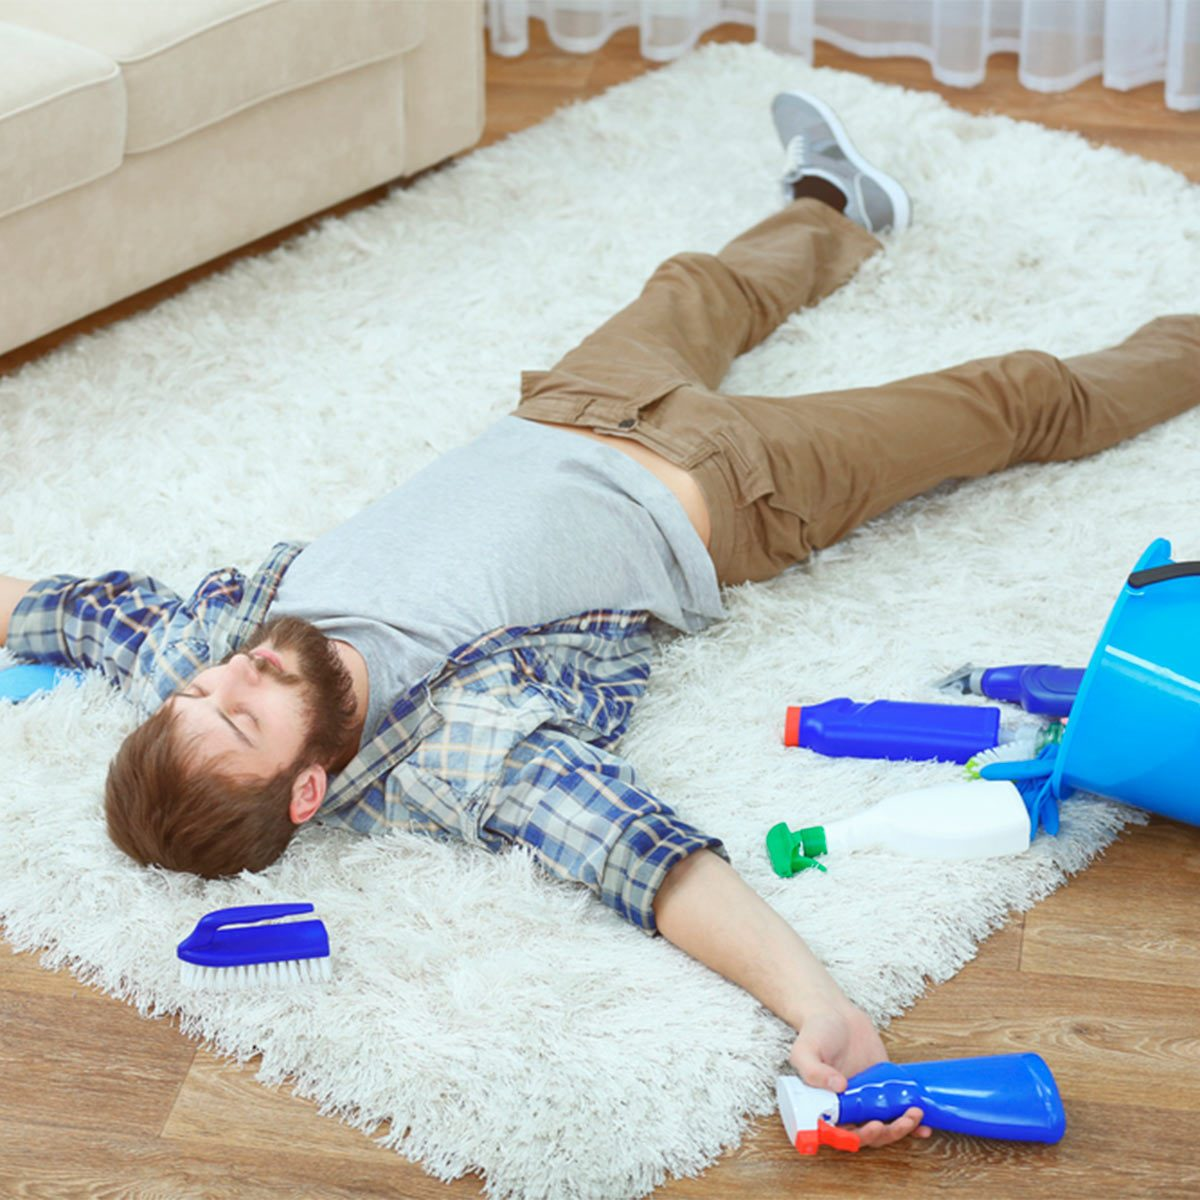 guy cleaning rug